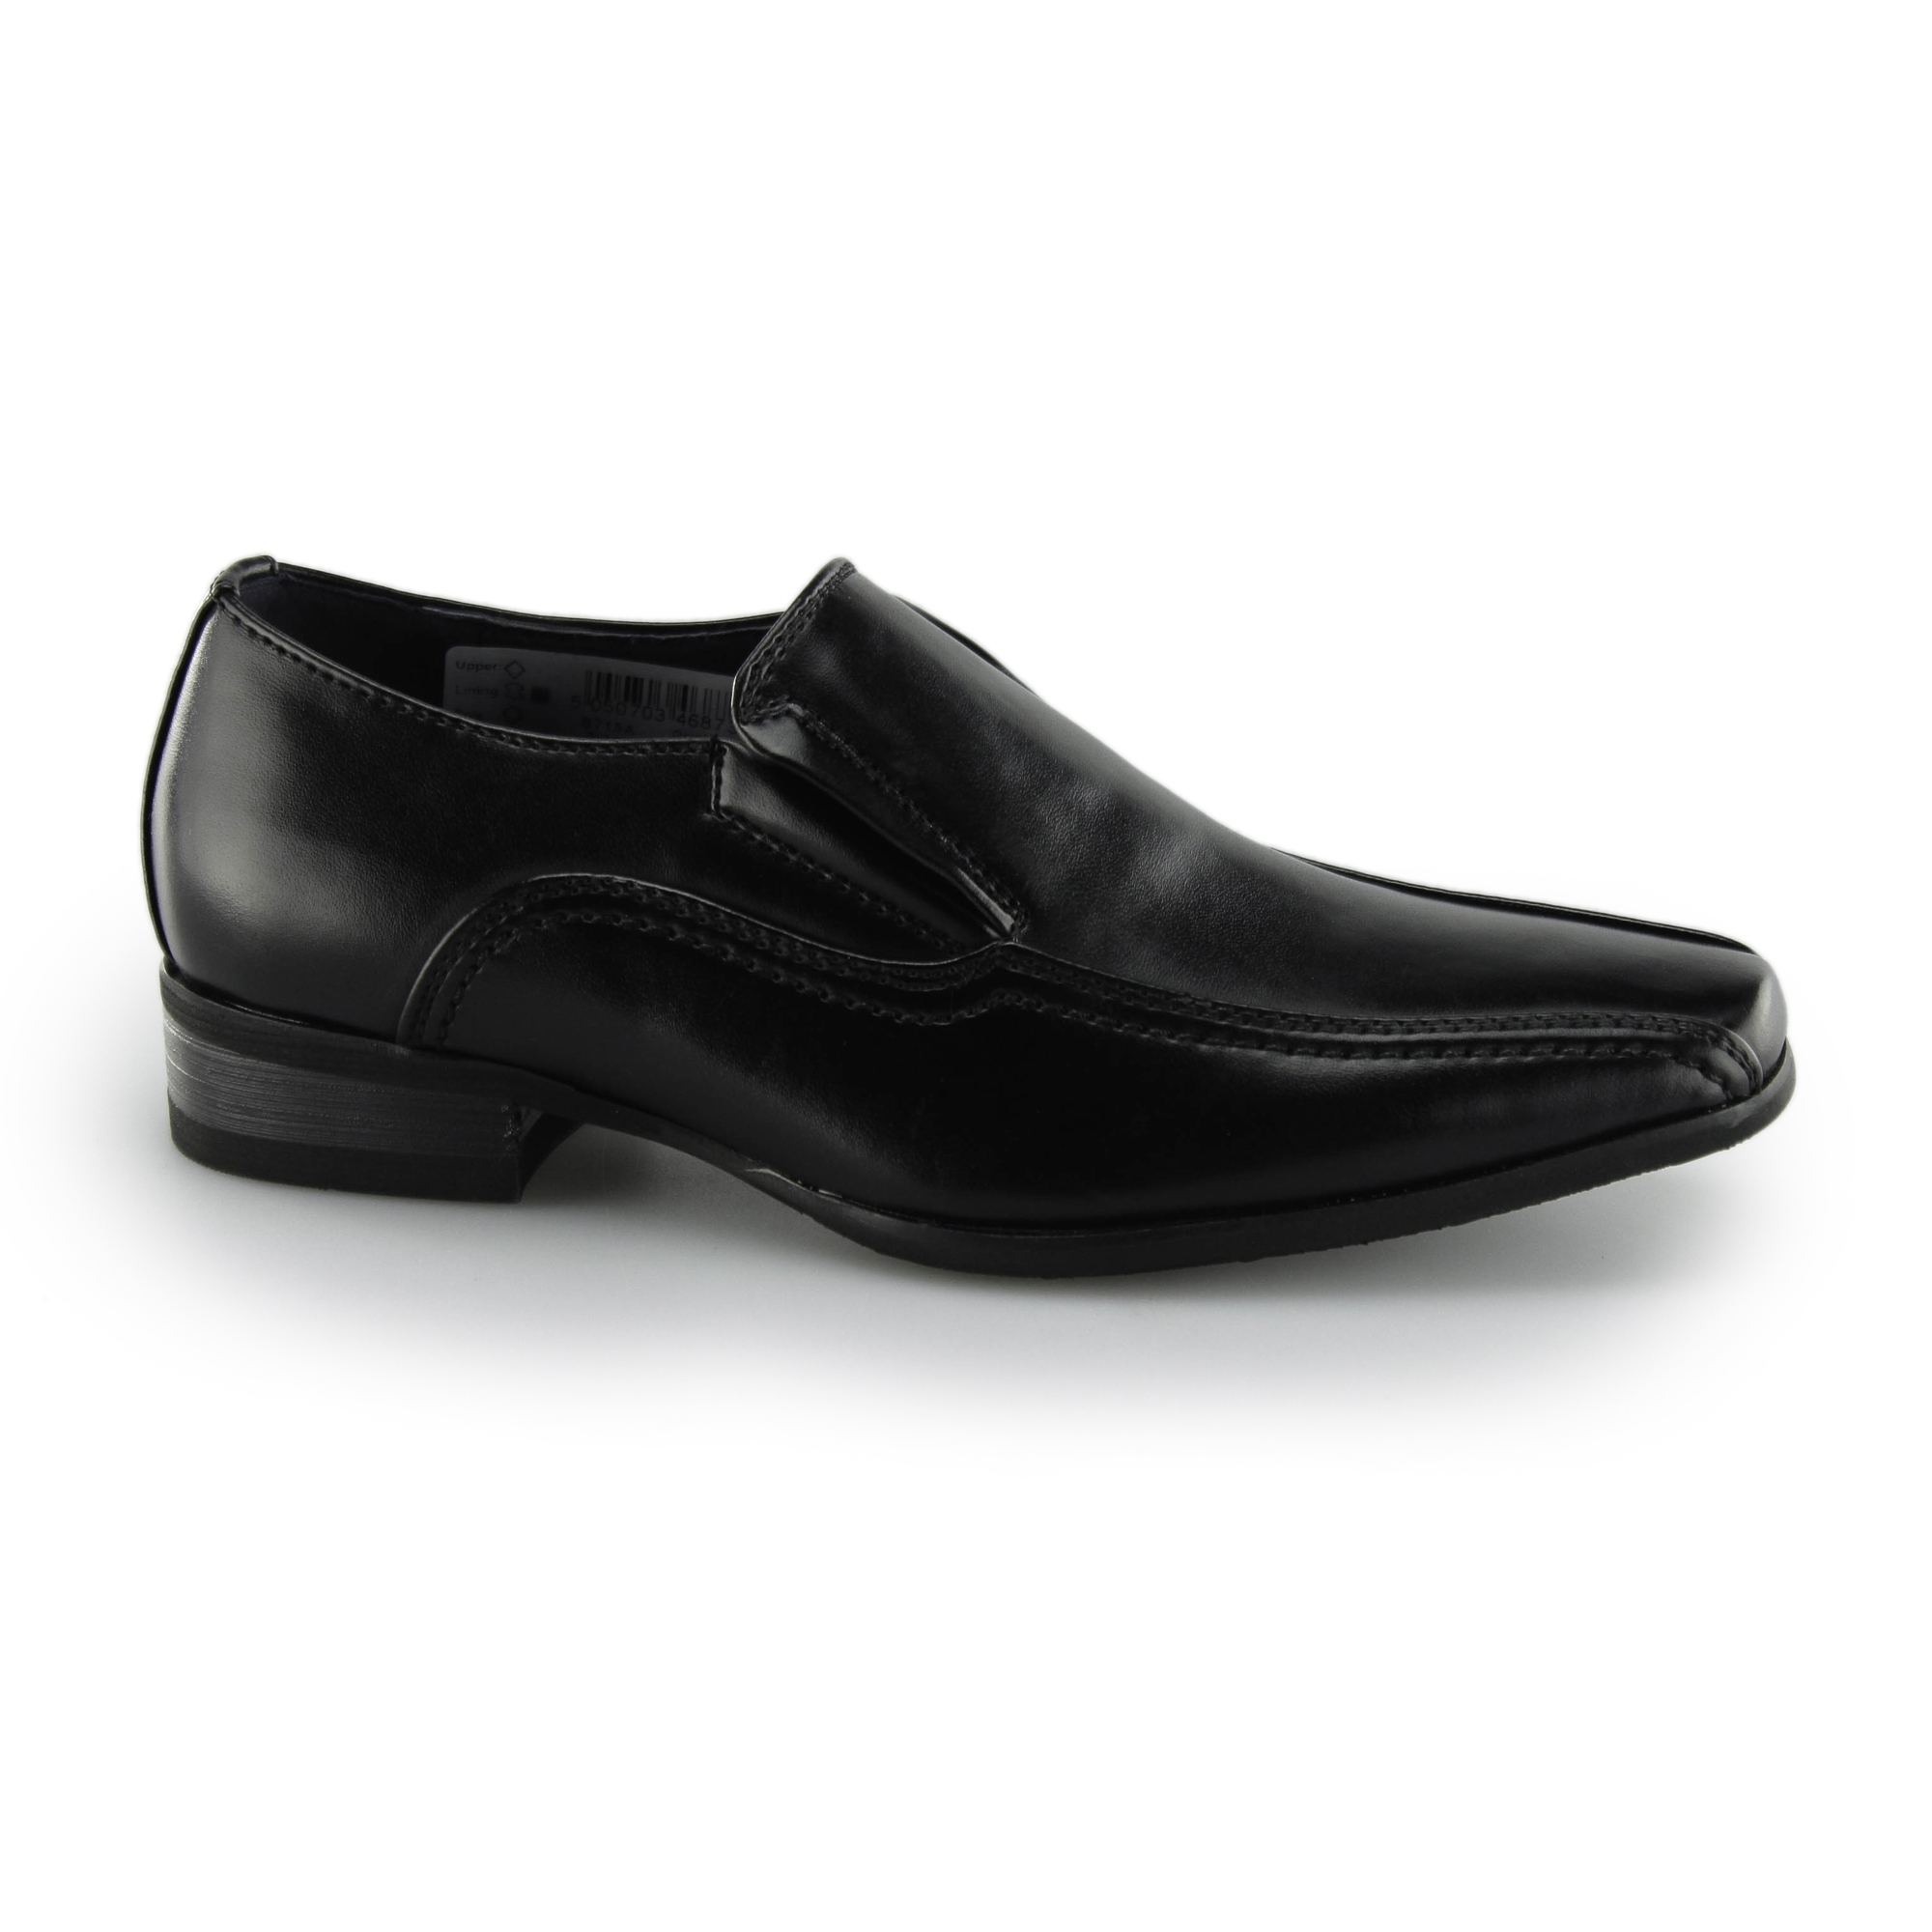 61b192ae43ce Route 21 CLASSIC Boys Leather Slip On Formal Loafers Black